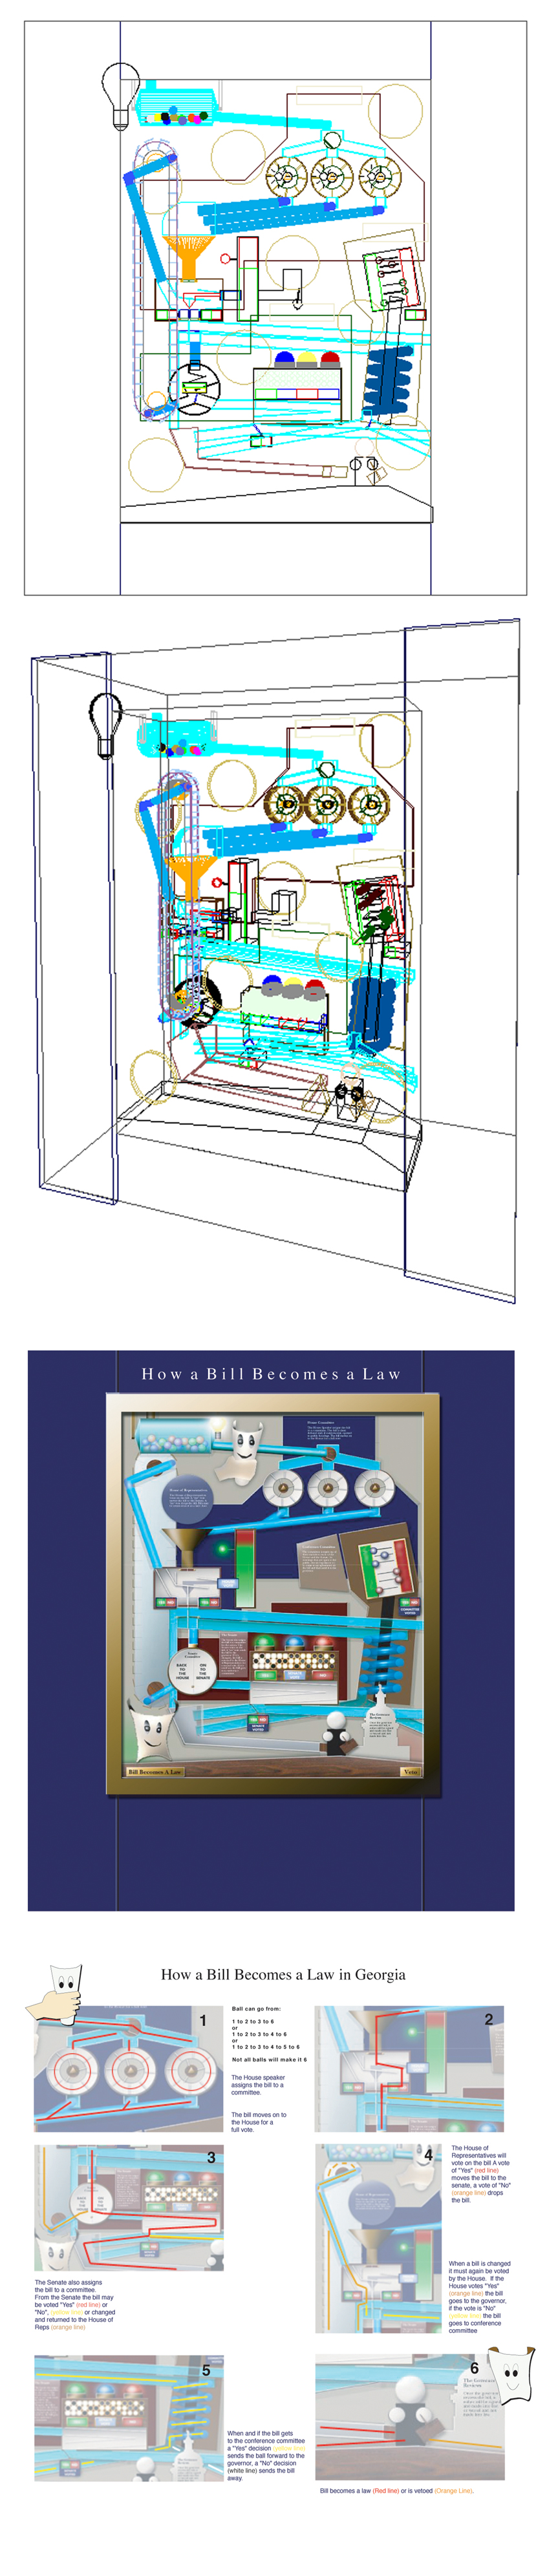 Design development drawings for How a Bill Becomes a Law exhibit.